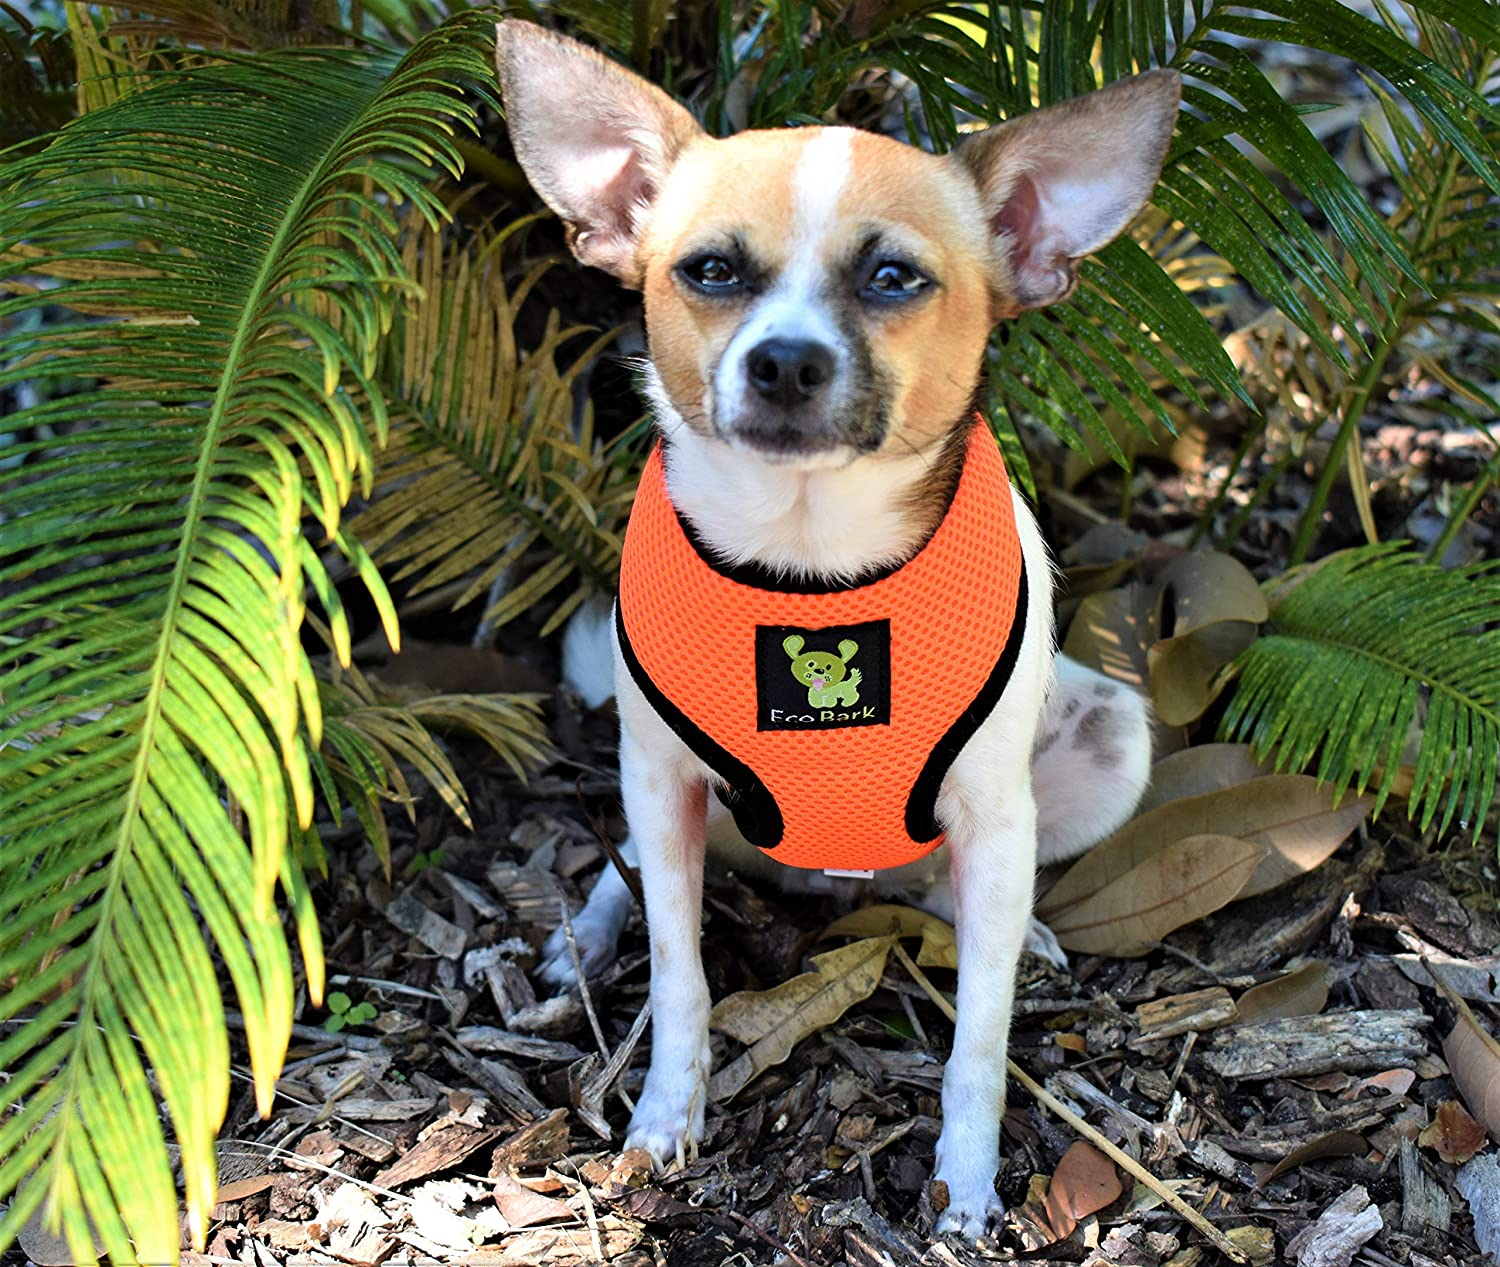 X-Small, Yellow EcoBark Dog Harness No-Pull Pet Harness Adjustable Outdoor Pet Vest ROSH Material Vest for Dogs Eco-Friendly Easy Control for Small Medium Large Dogs